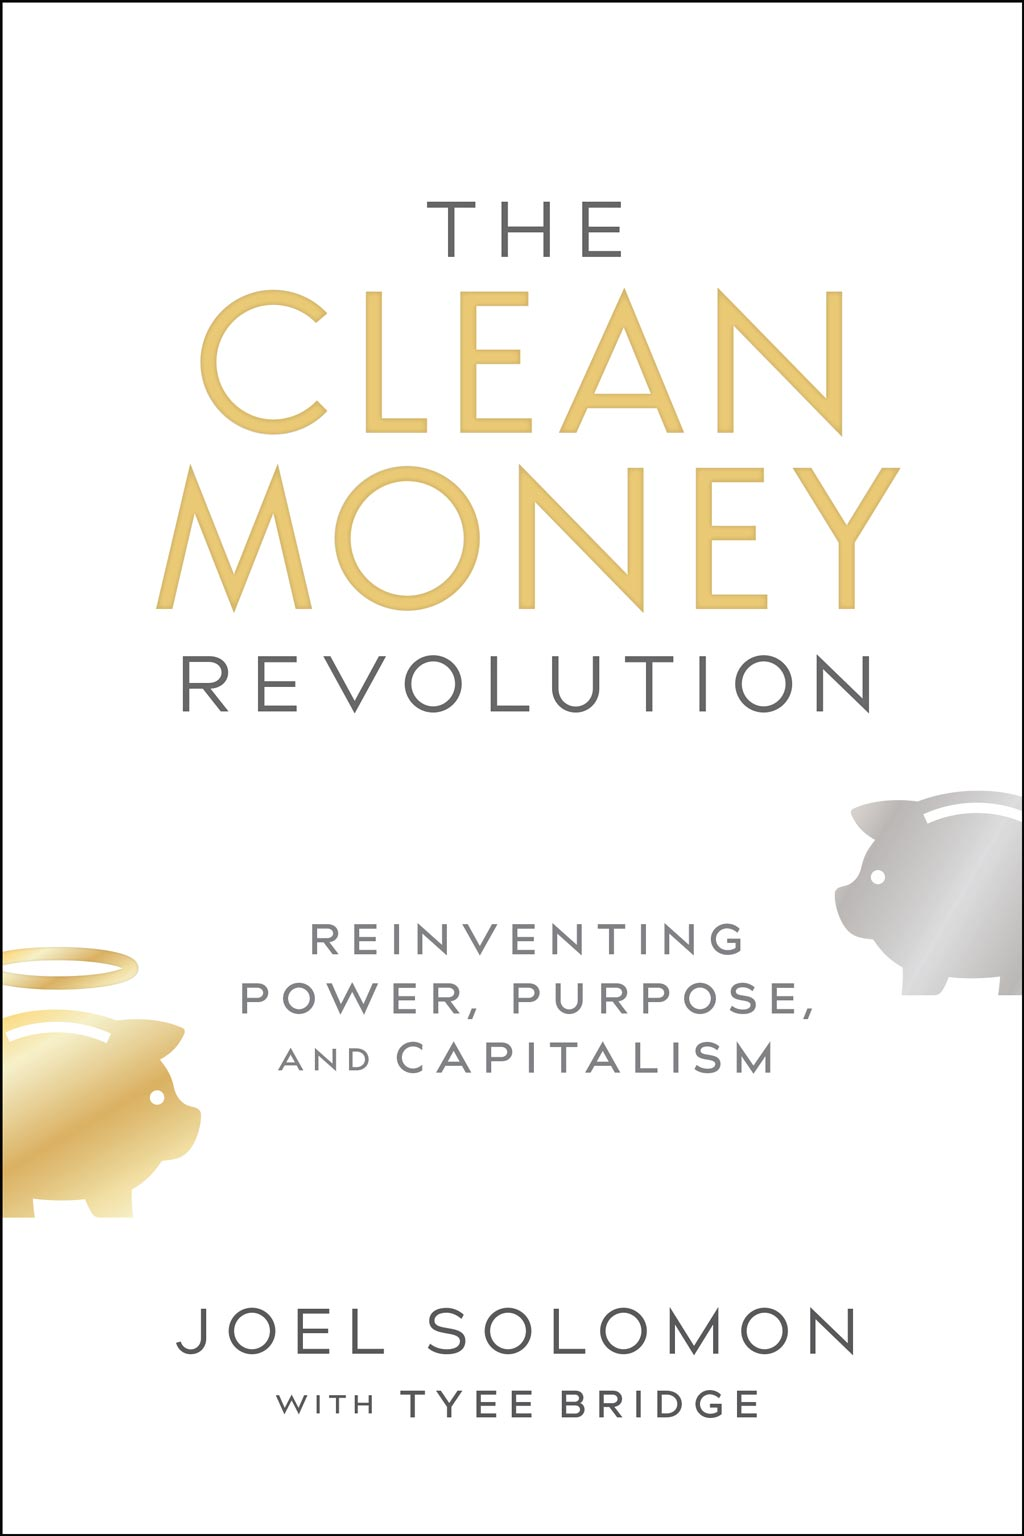 The-clean-money-revolution-by-joel-solomon